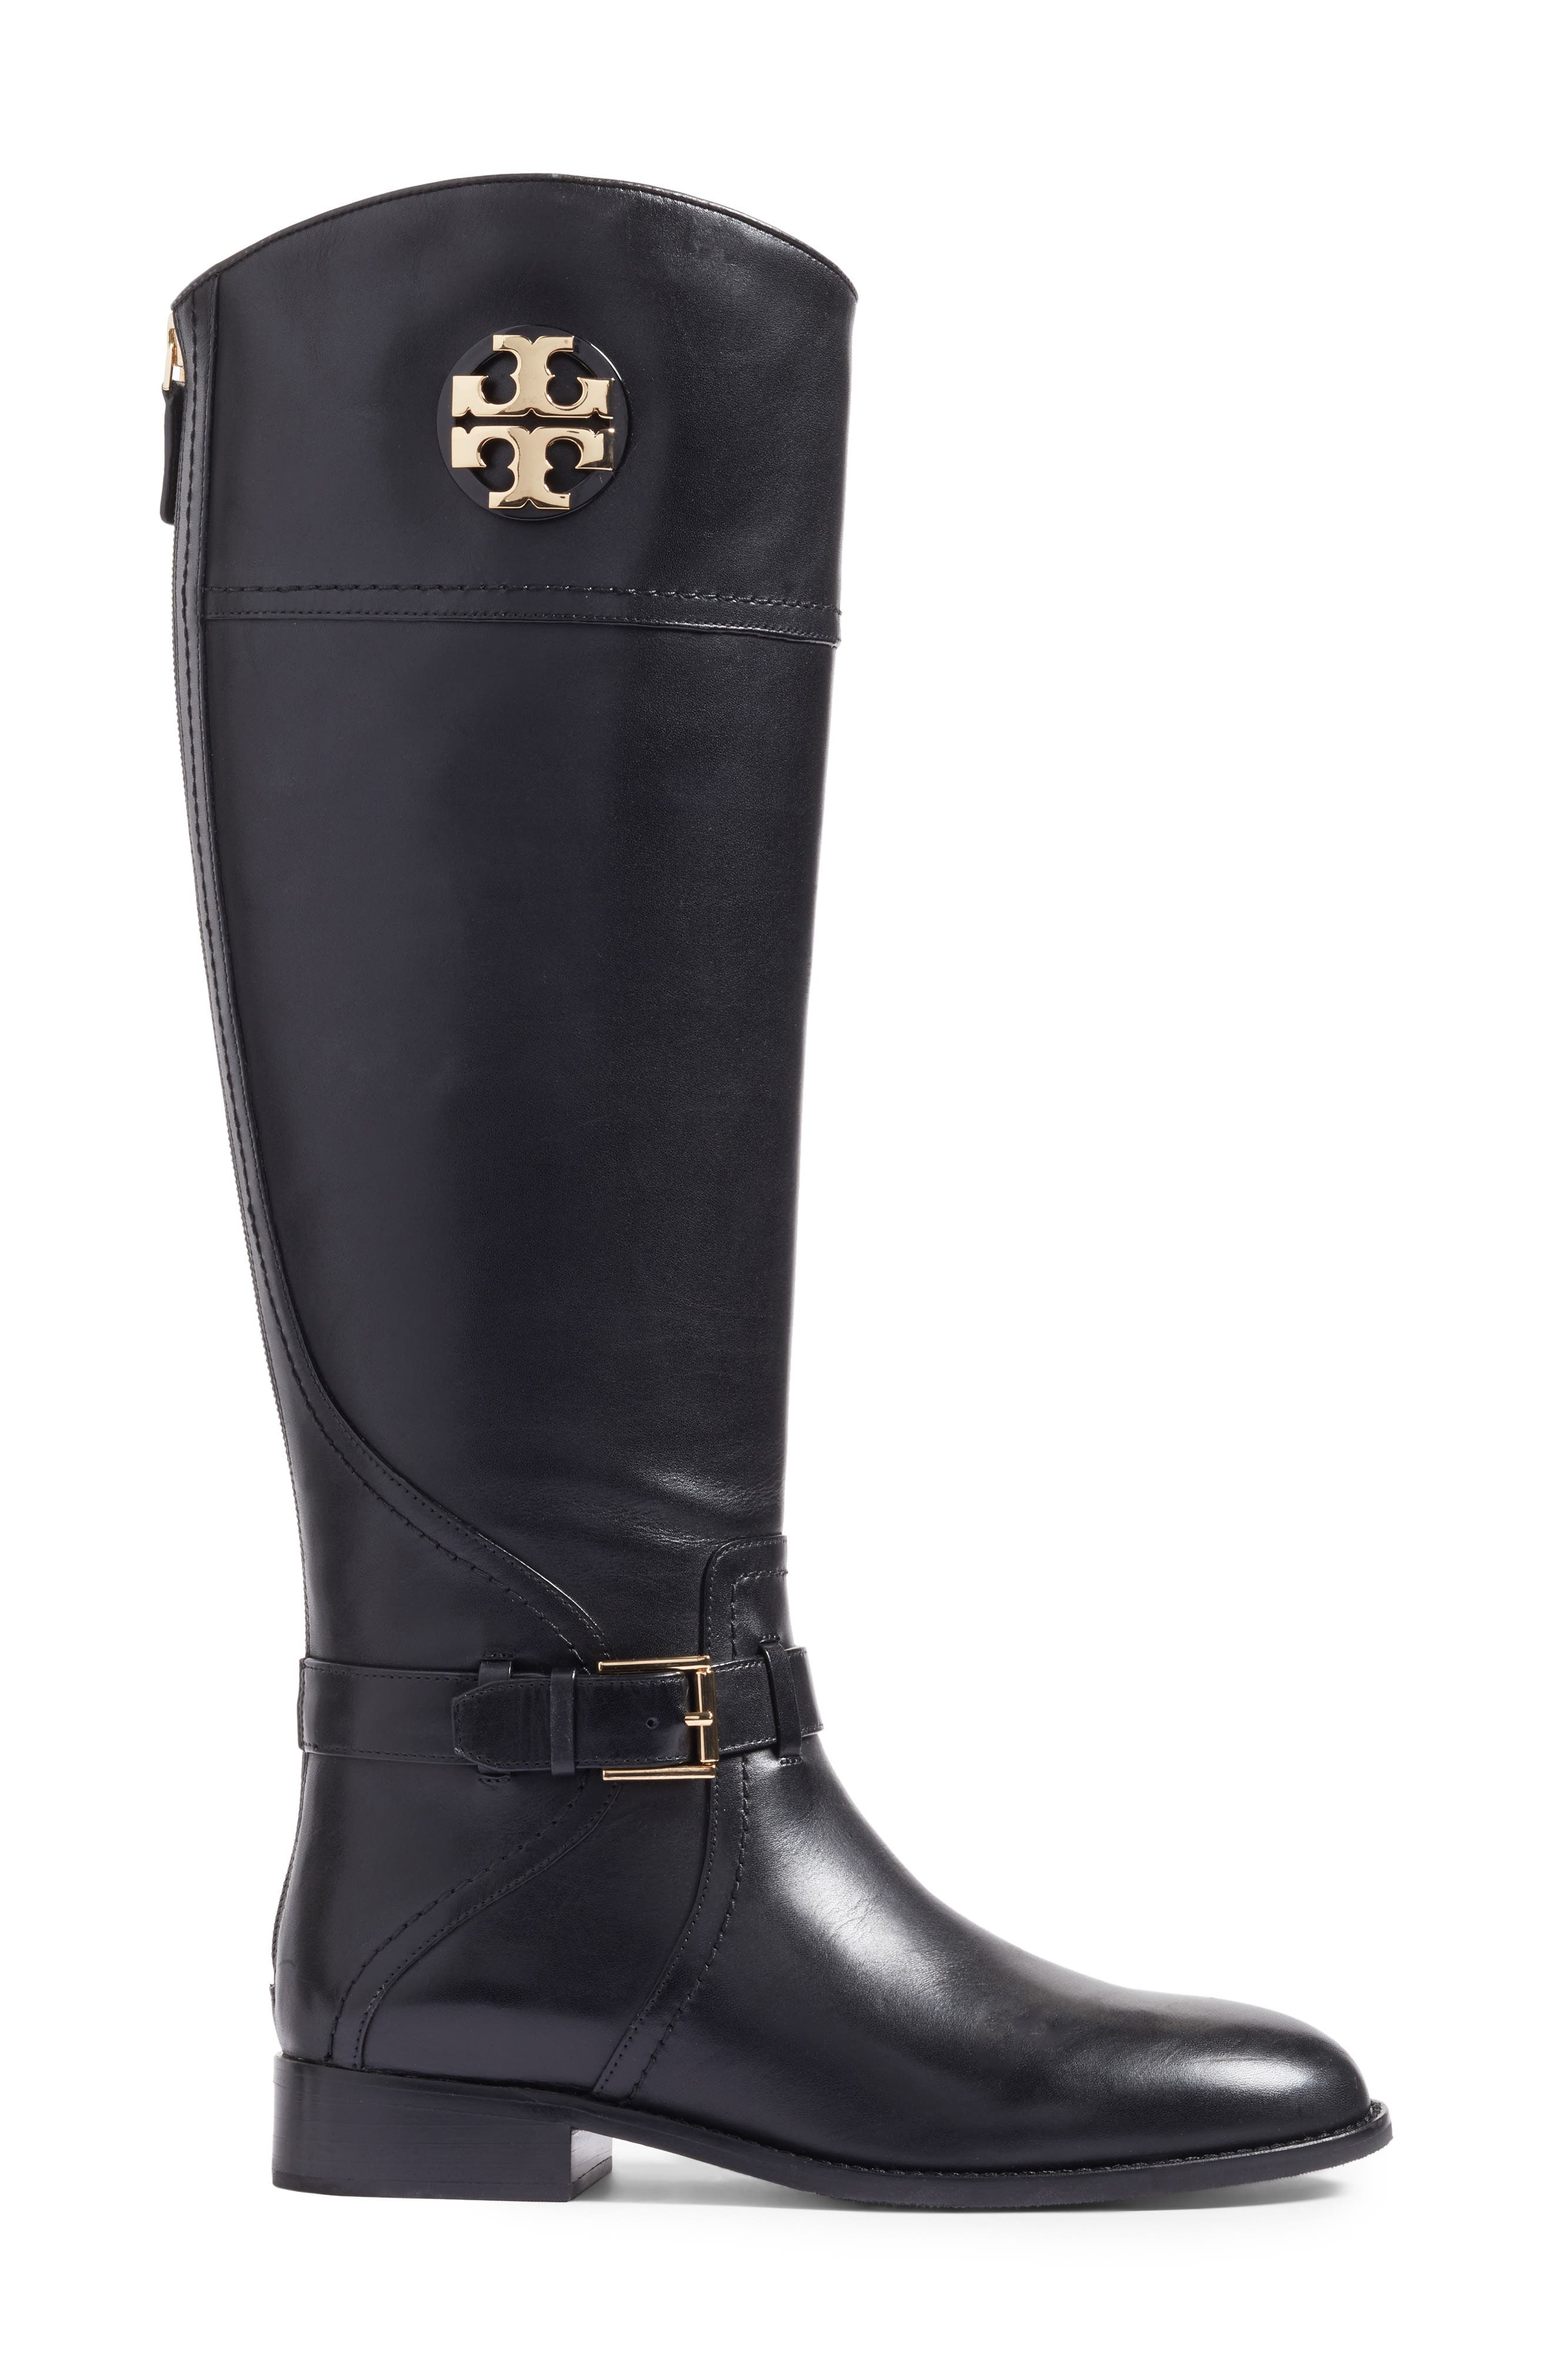 TORY BURCH, Adeline Boot, Alternate thumbnail 3, color, 001